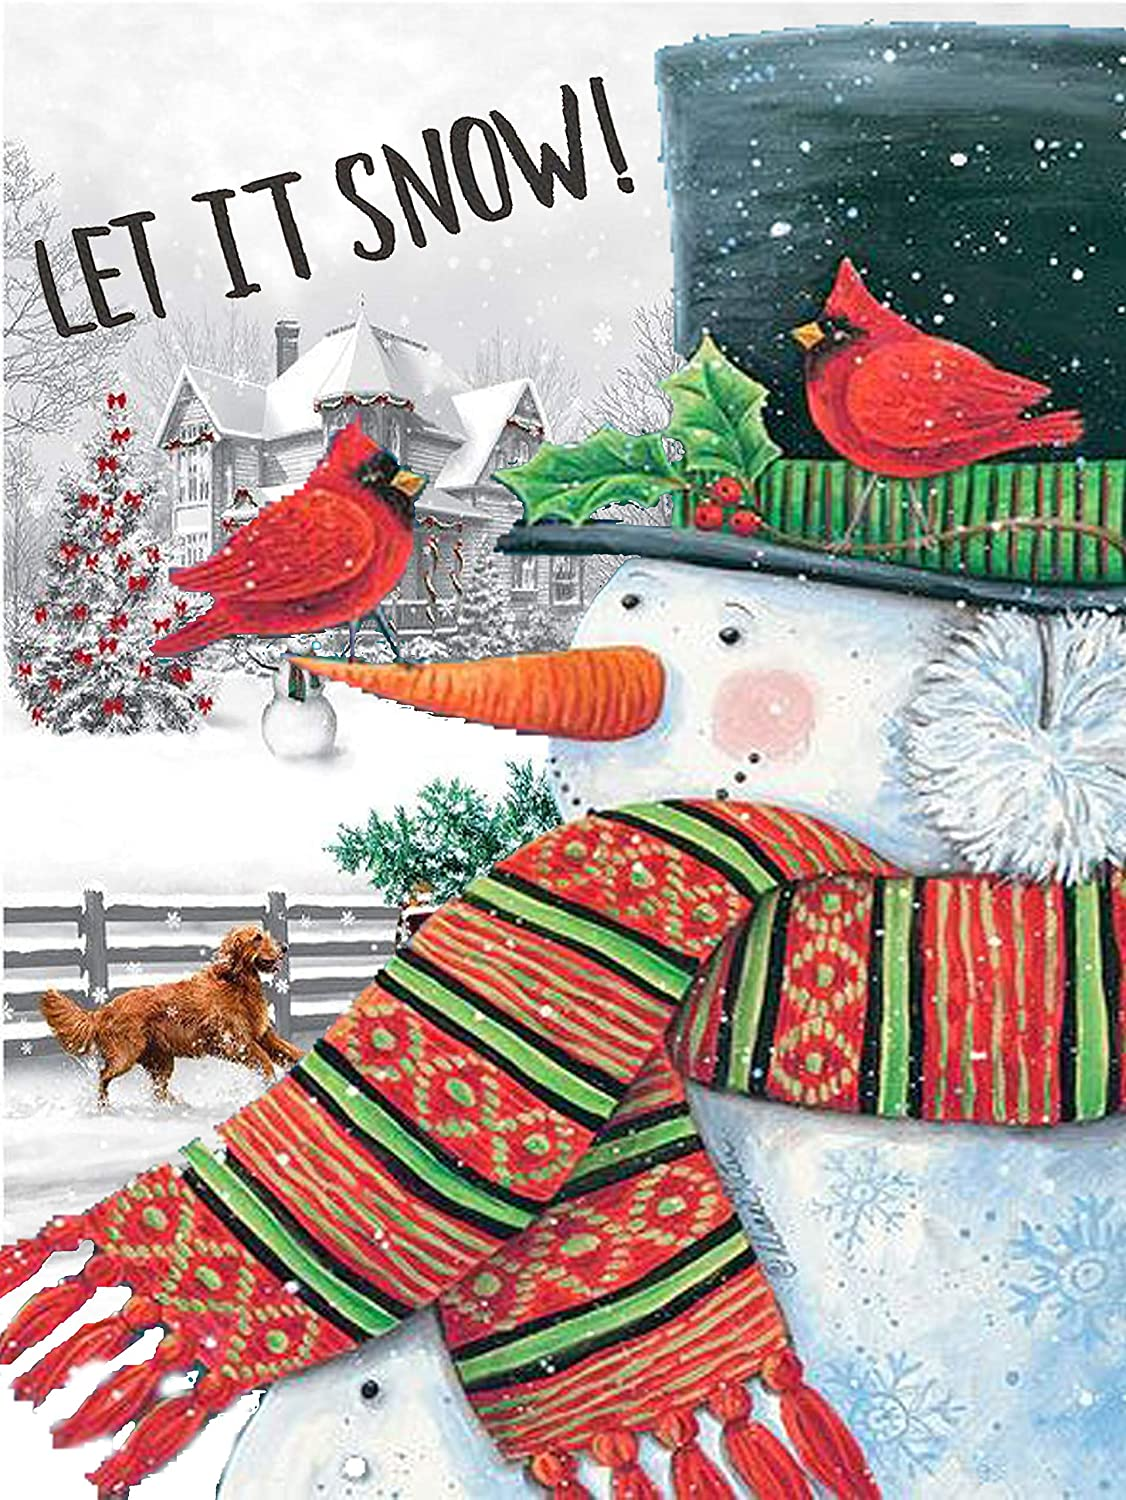 Christmas Snowman Cardinal Bird Garden Flag 12 x 18 Double Sided Snowflake Dog Let it Snow House Yard Flags Welcome Winter Outdoor Indoor Banner for Party Home Merry Christmas Decorations